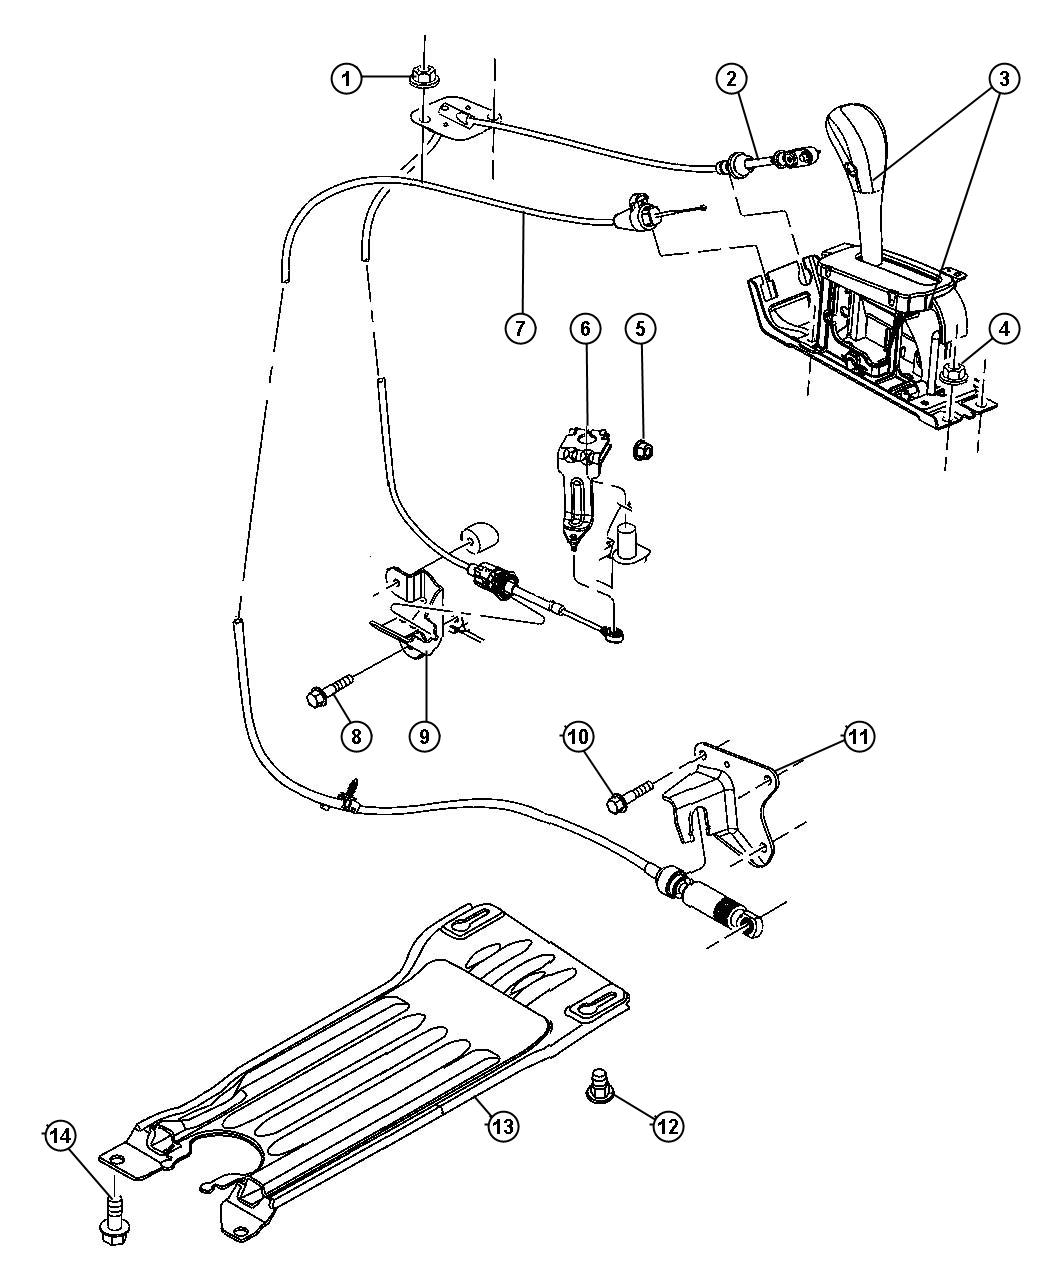 Service manual [Removal Of 2005 Jeep Liberty Tranmission